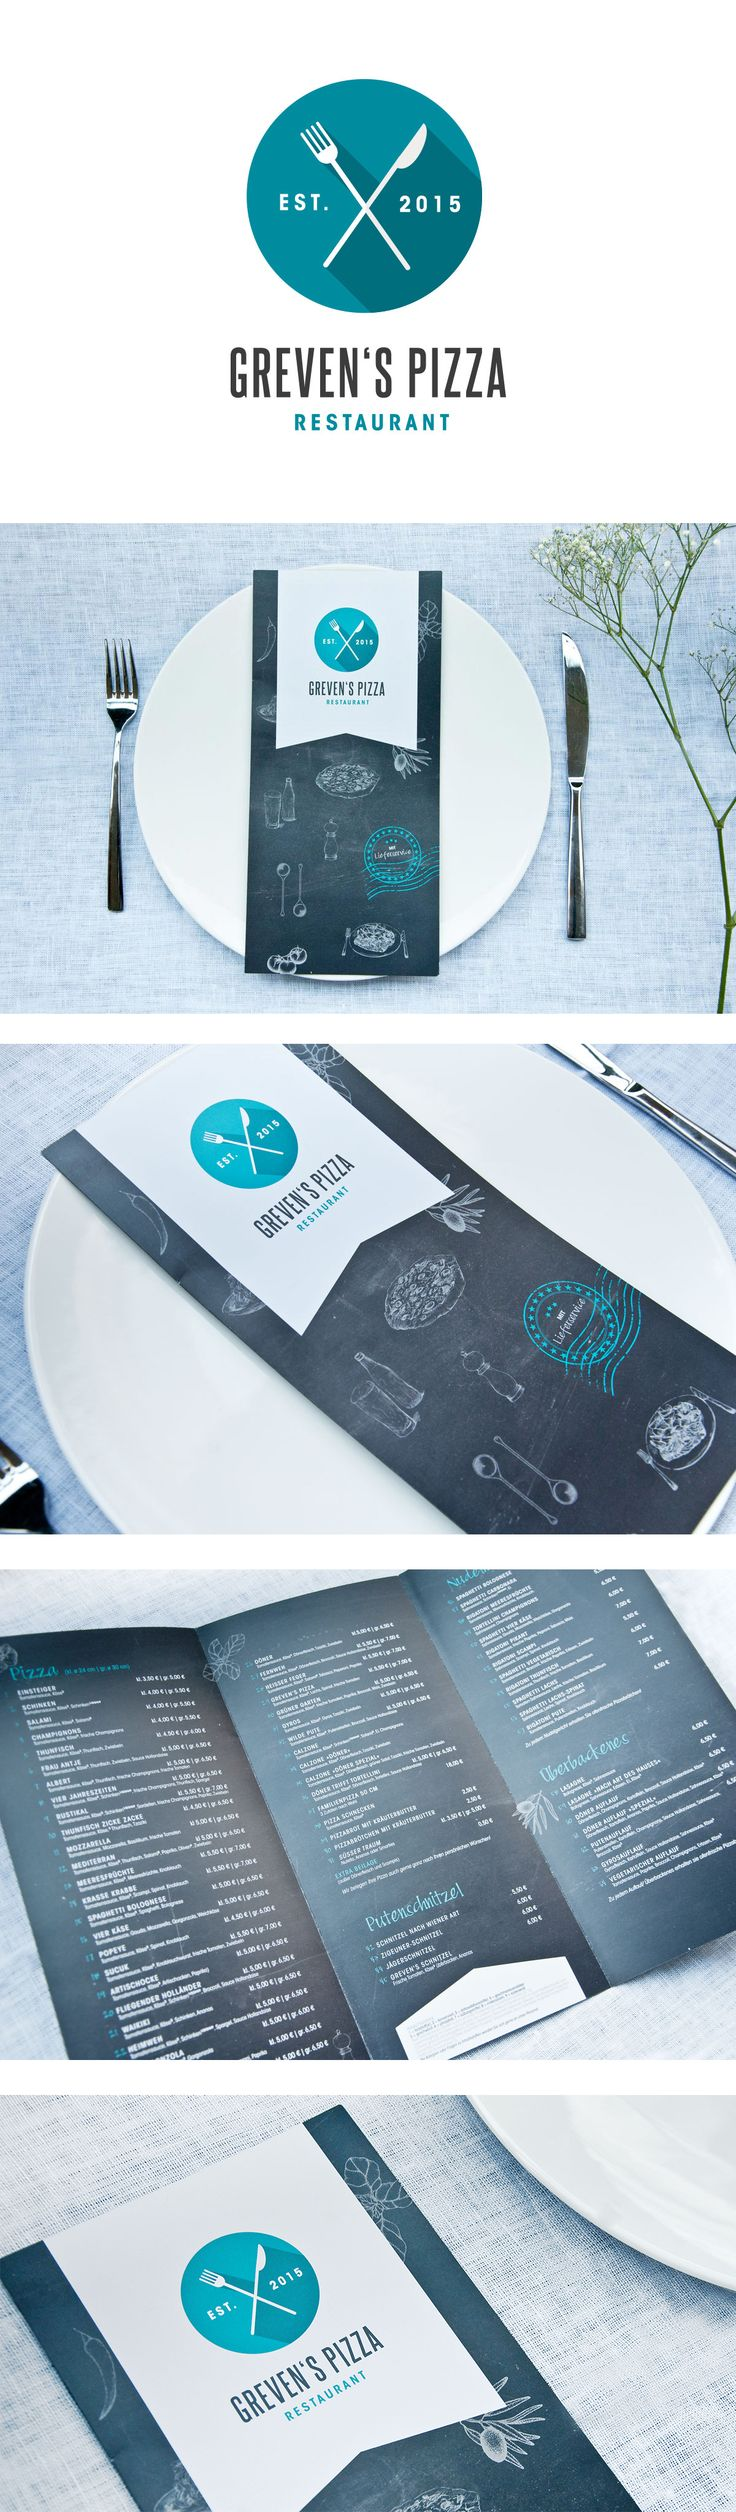 Corporate Design, Logo and Menue for an Italian Restaurant / Pizzeria / Ristorante  #pizza #food #yummi  www.save-design.de